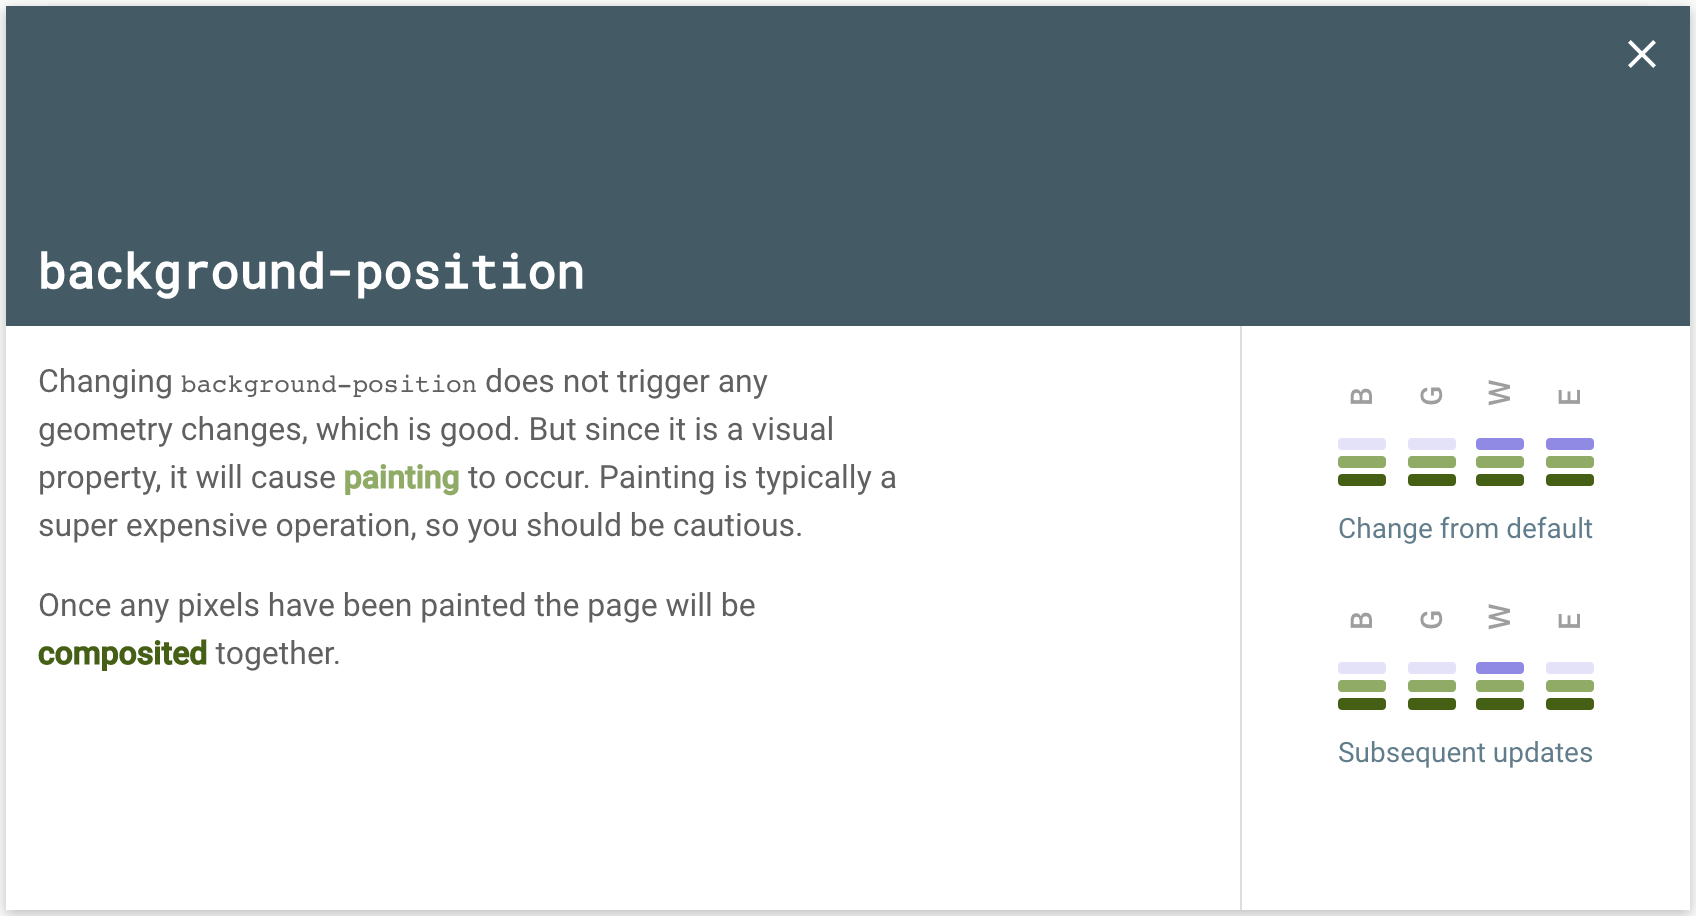 screenshot of site explaining why background positioning is not an optimal choice to use when animating